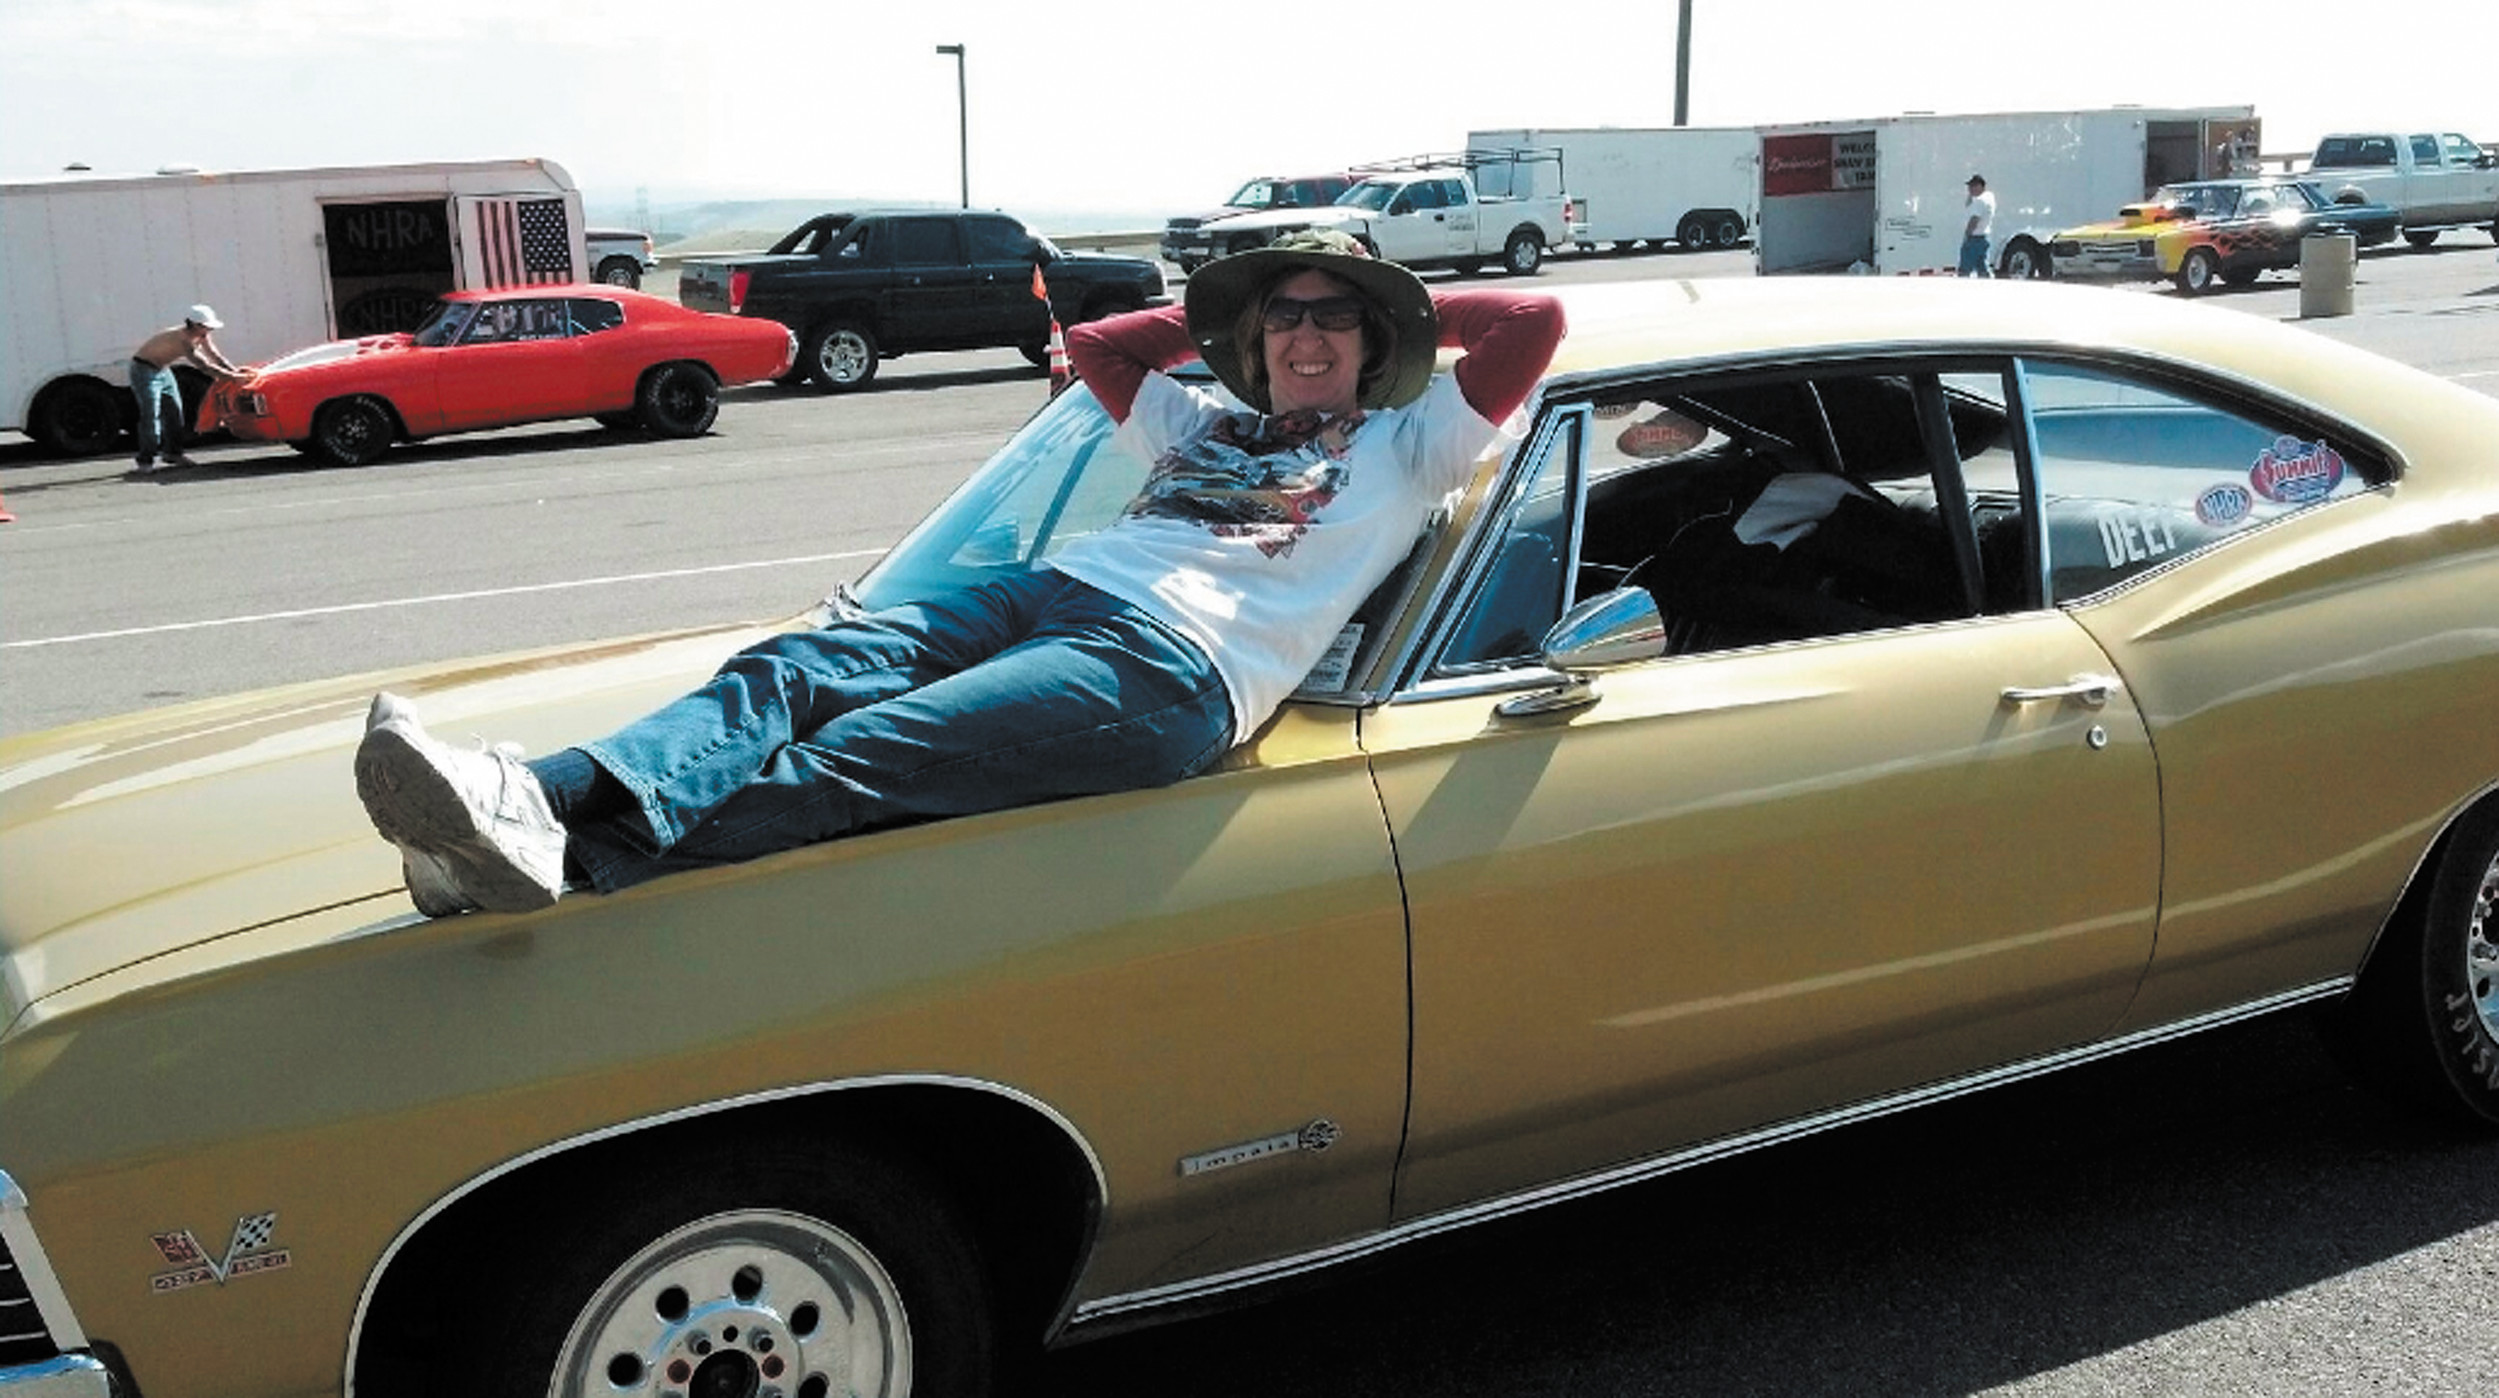 Cheryl Muhr takes a break on top of her 1967 Chevy Impala. Muhr spends a lot of time enjoying the sport of racing with her husband, John, at Bandimere Speedway in Morrison.